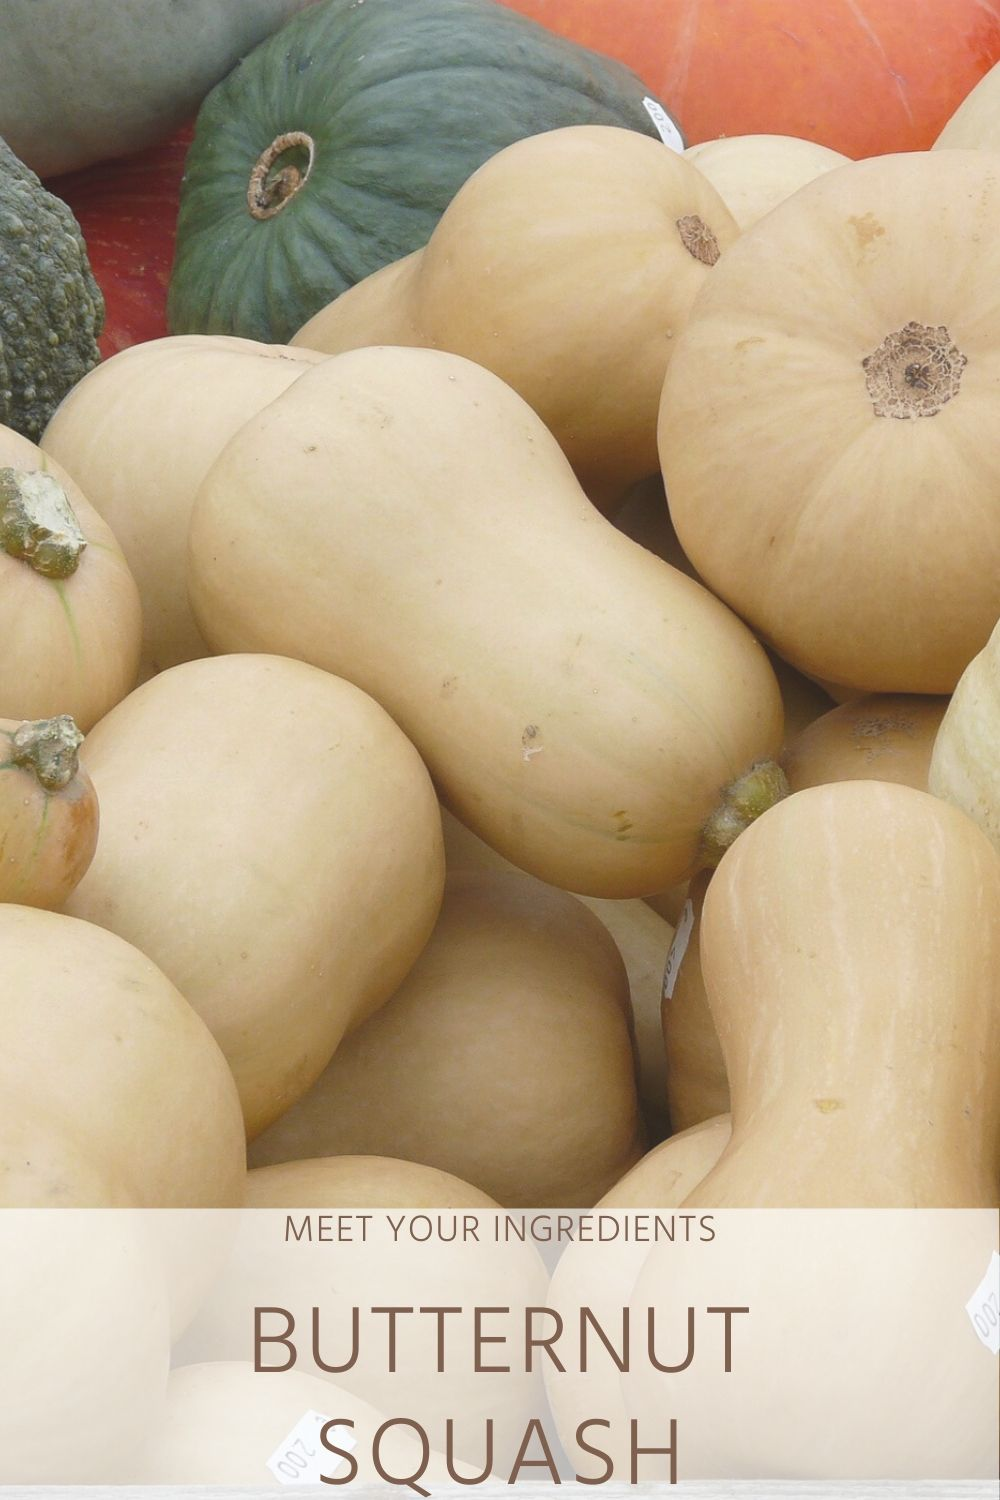 Meet Your Ingredients: Butternut Squash